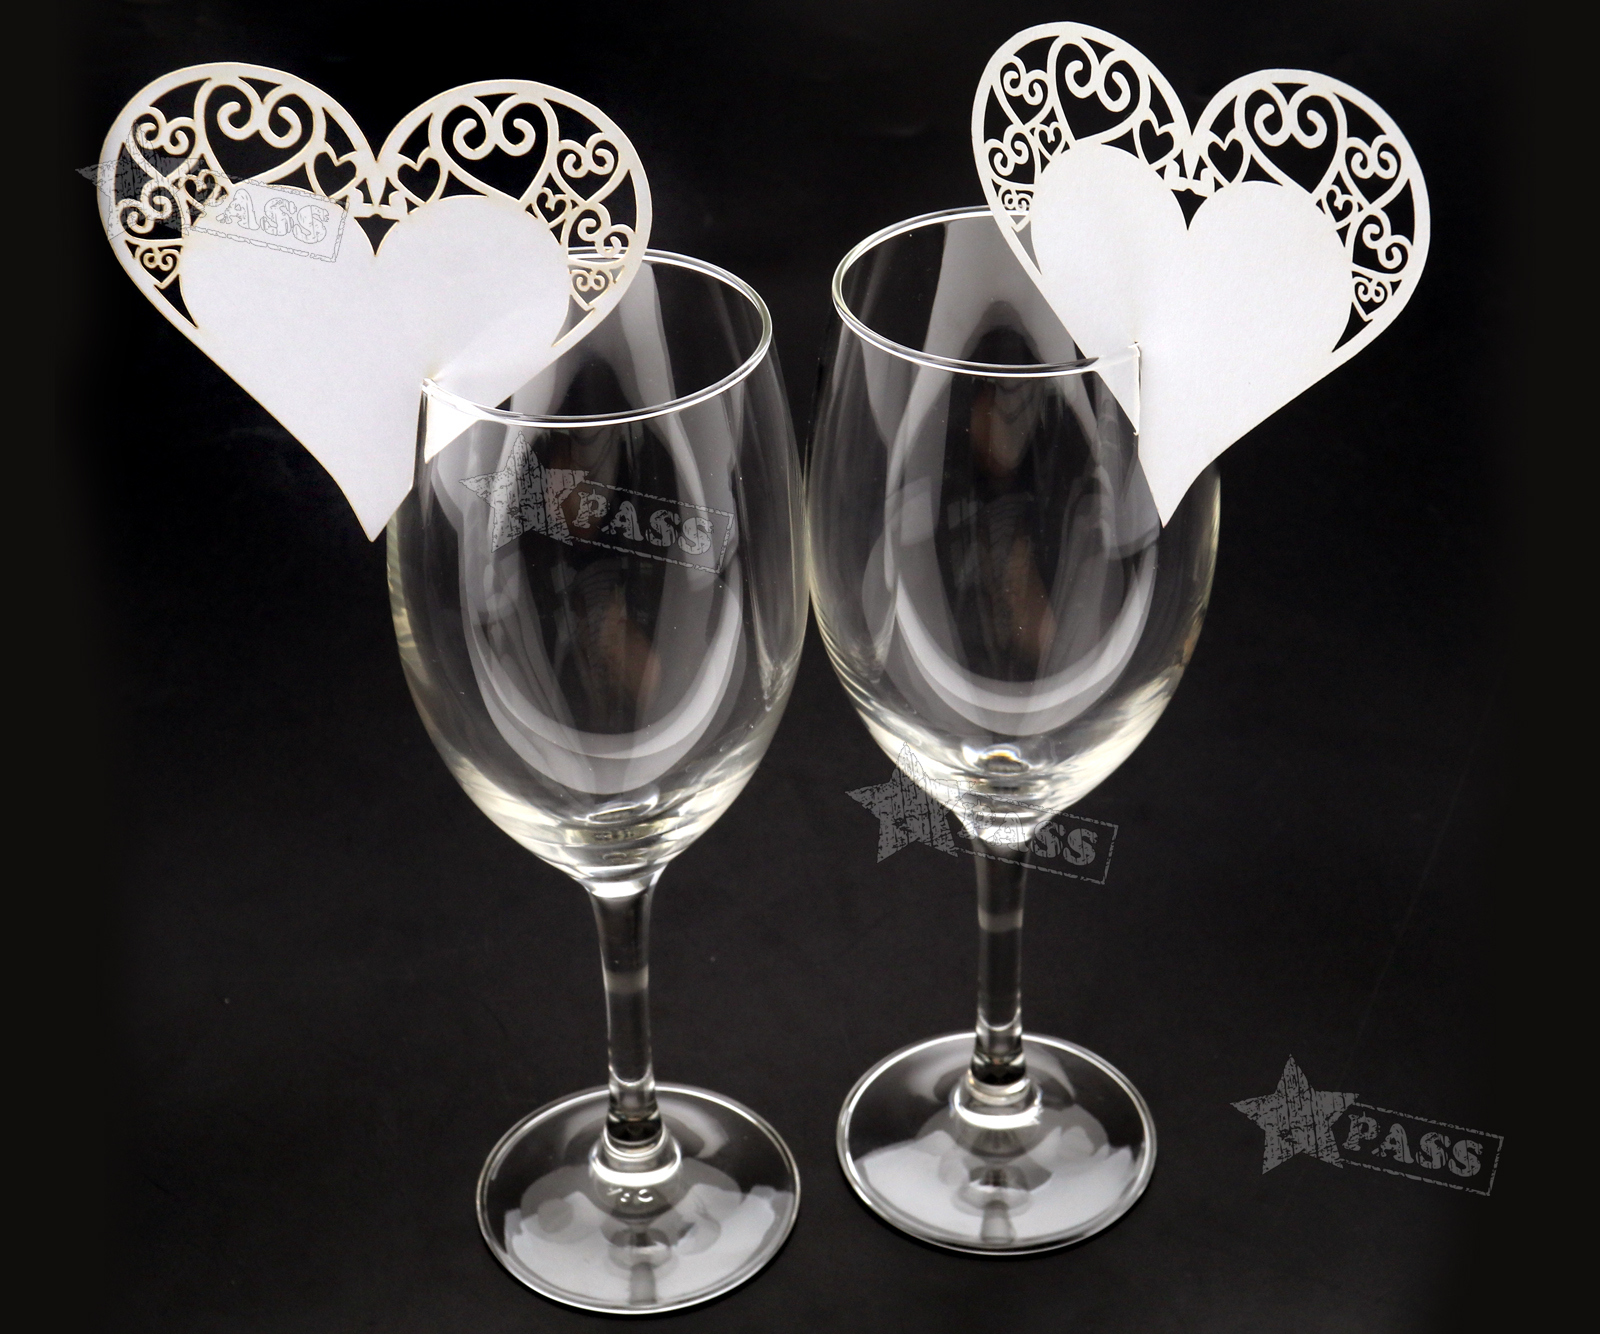 50x Love Heart Name Place Cards For Wedding Party Table Wine Glass Decoration